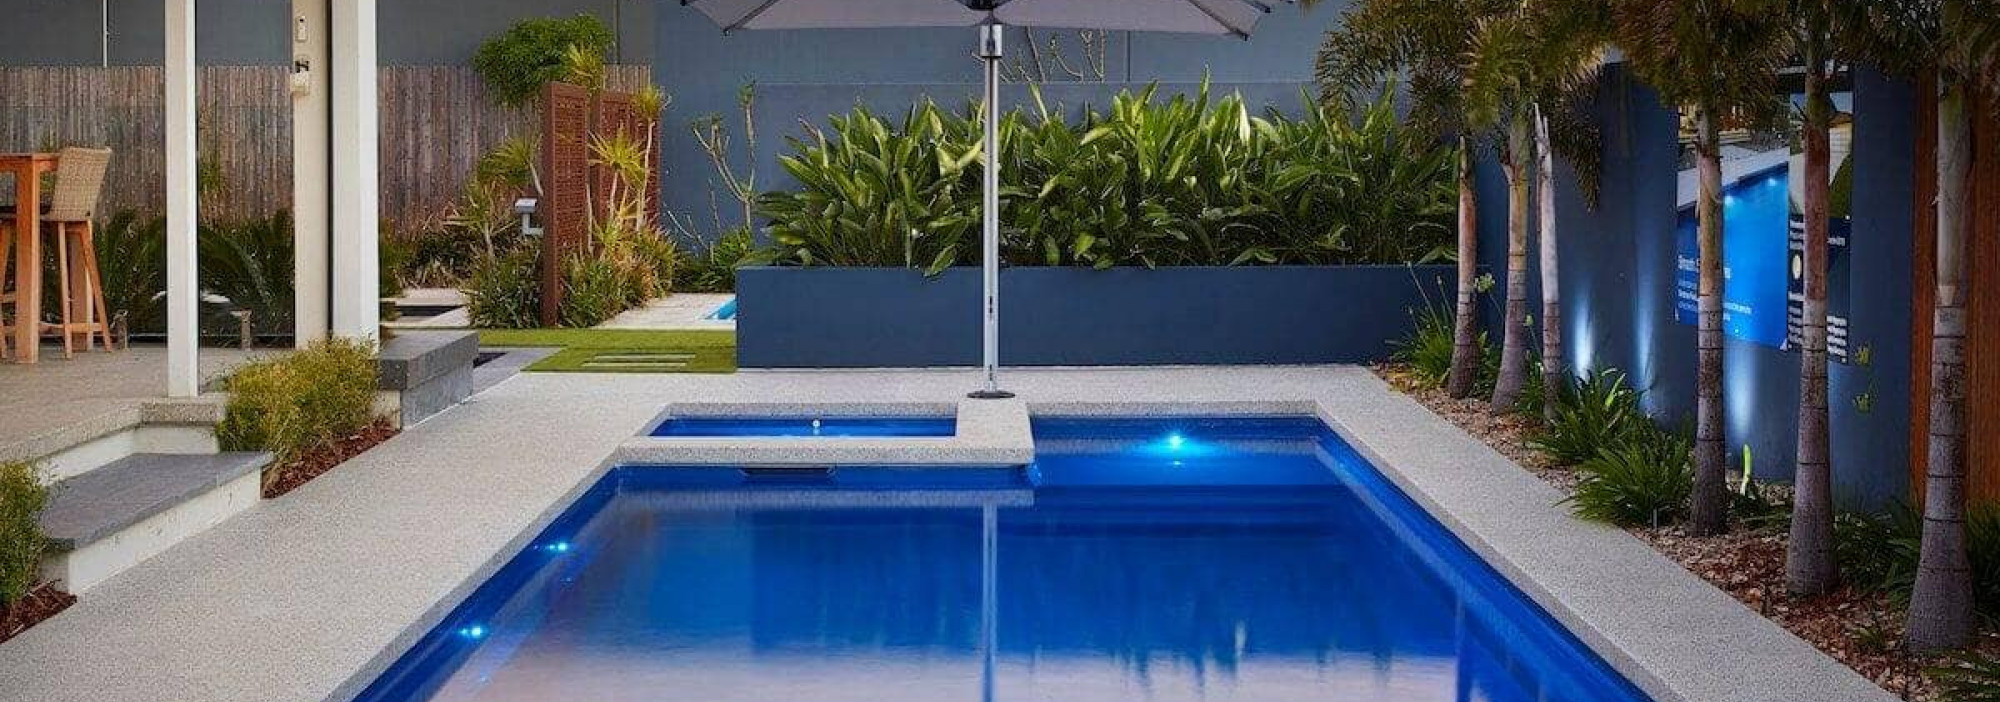 Swim Spas & Spa Pools Devonport